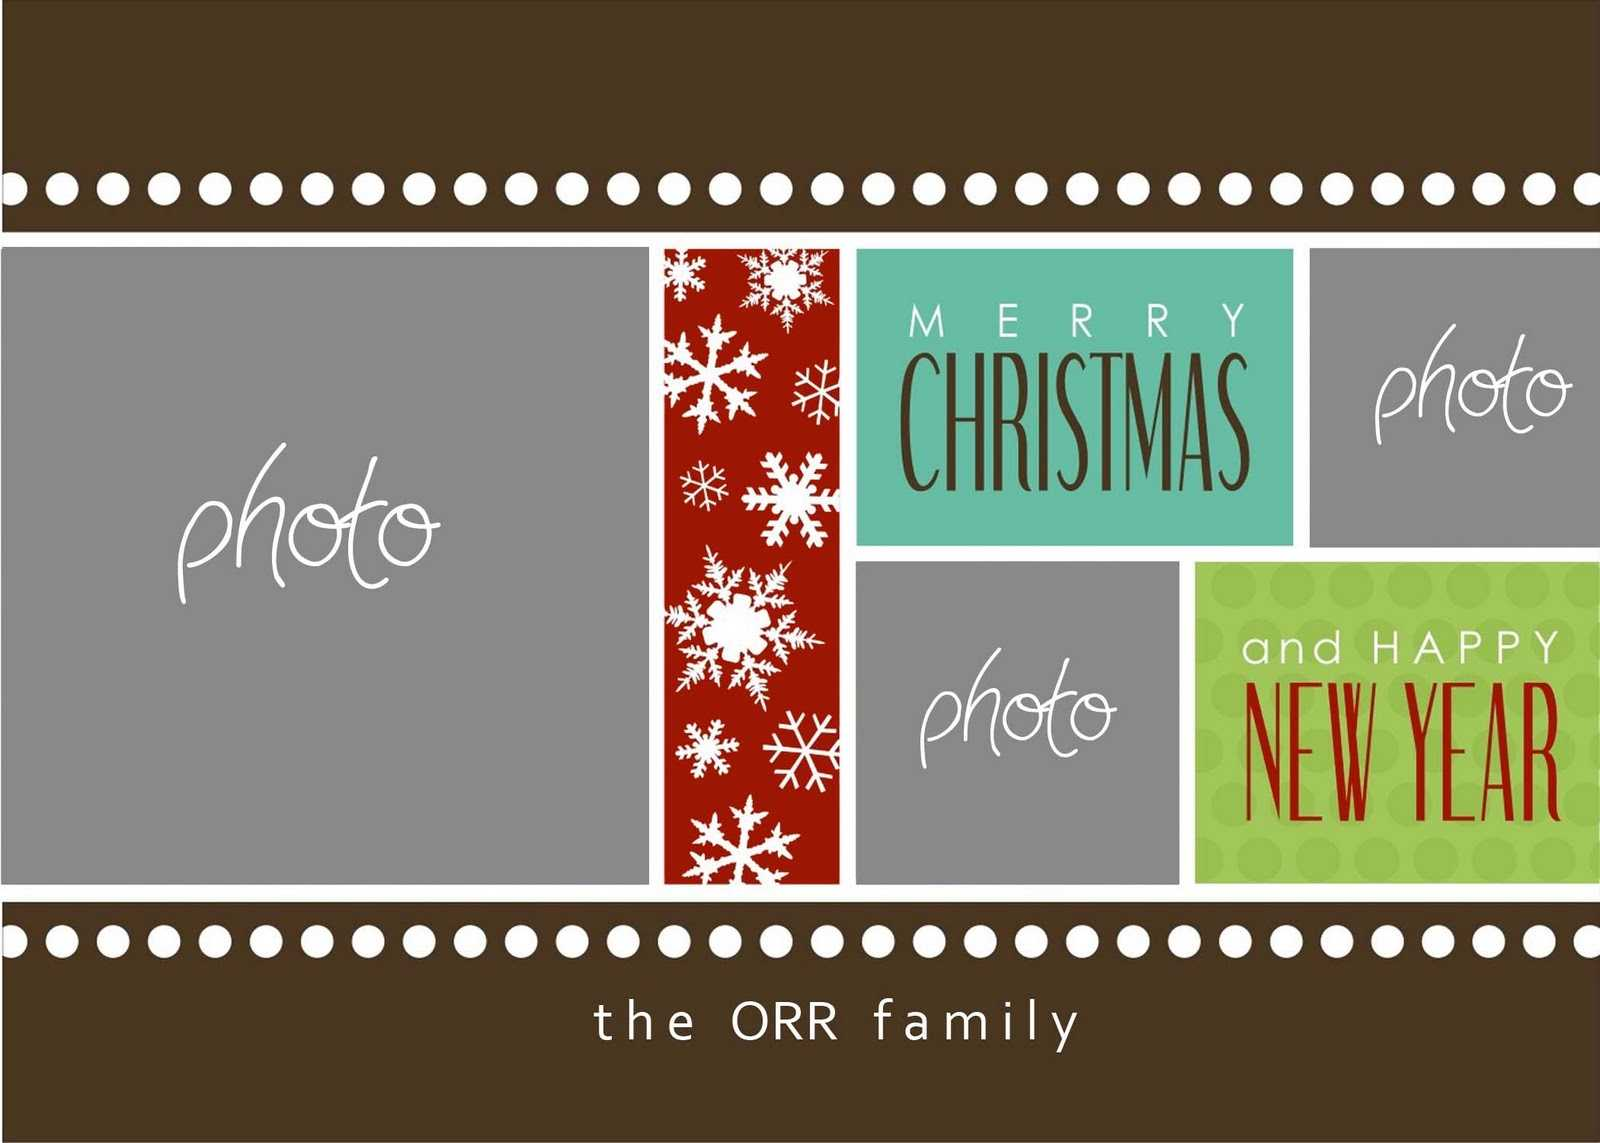 Christmas Cards Templates Photoshop ] - Christmas Card In Free Christmas Card Templates For Photoshop